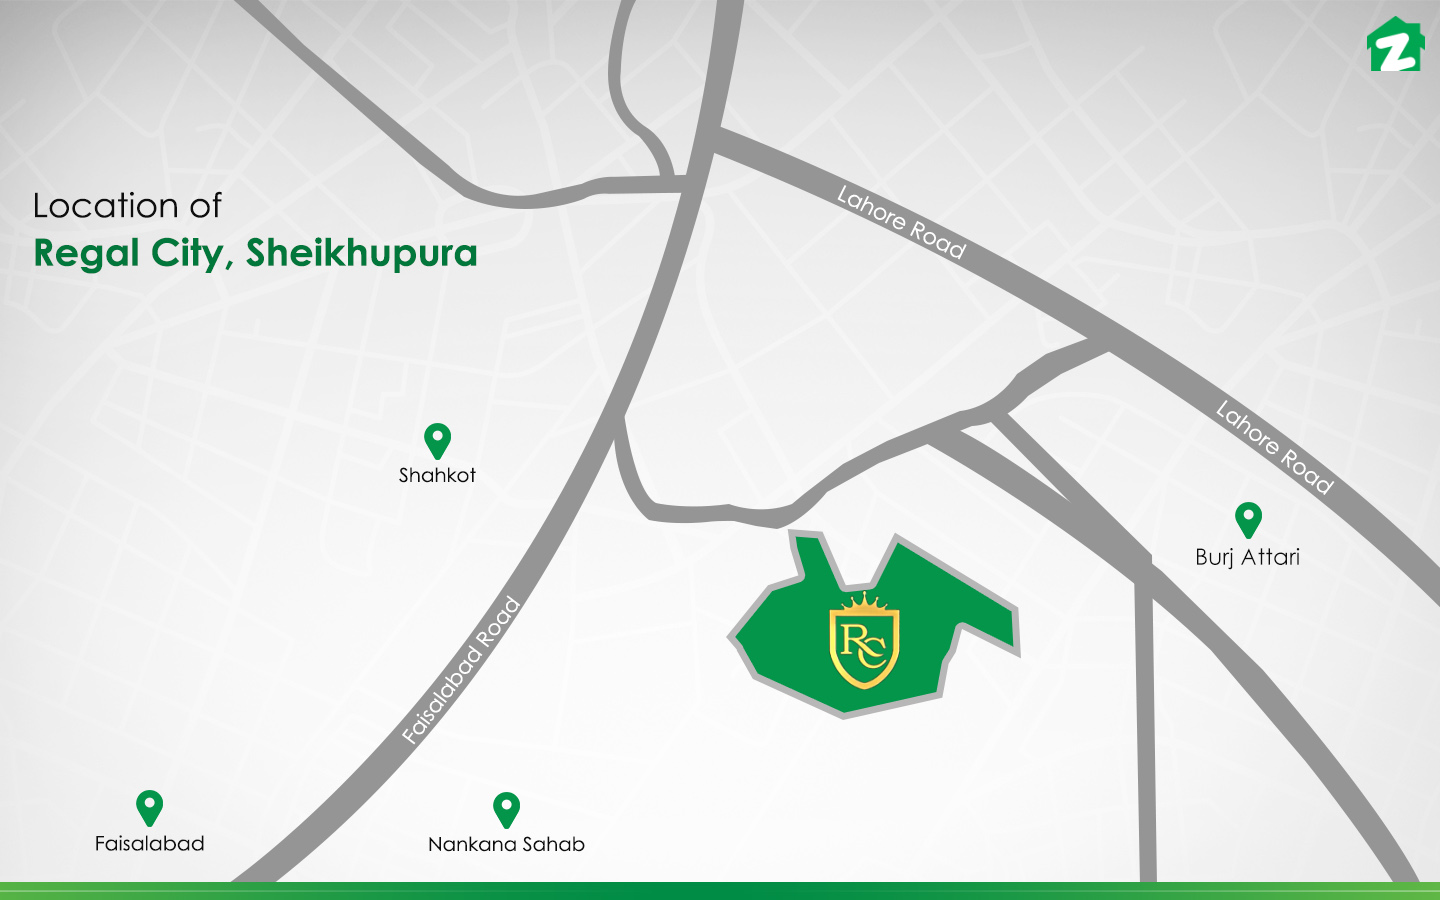 The location of Regal City of Sheikhupura.